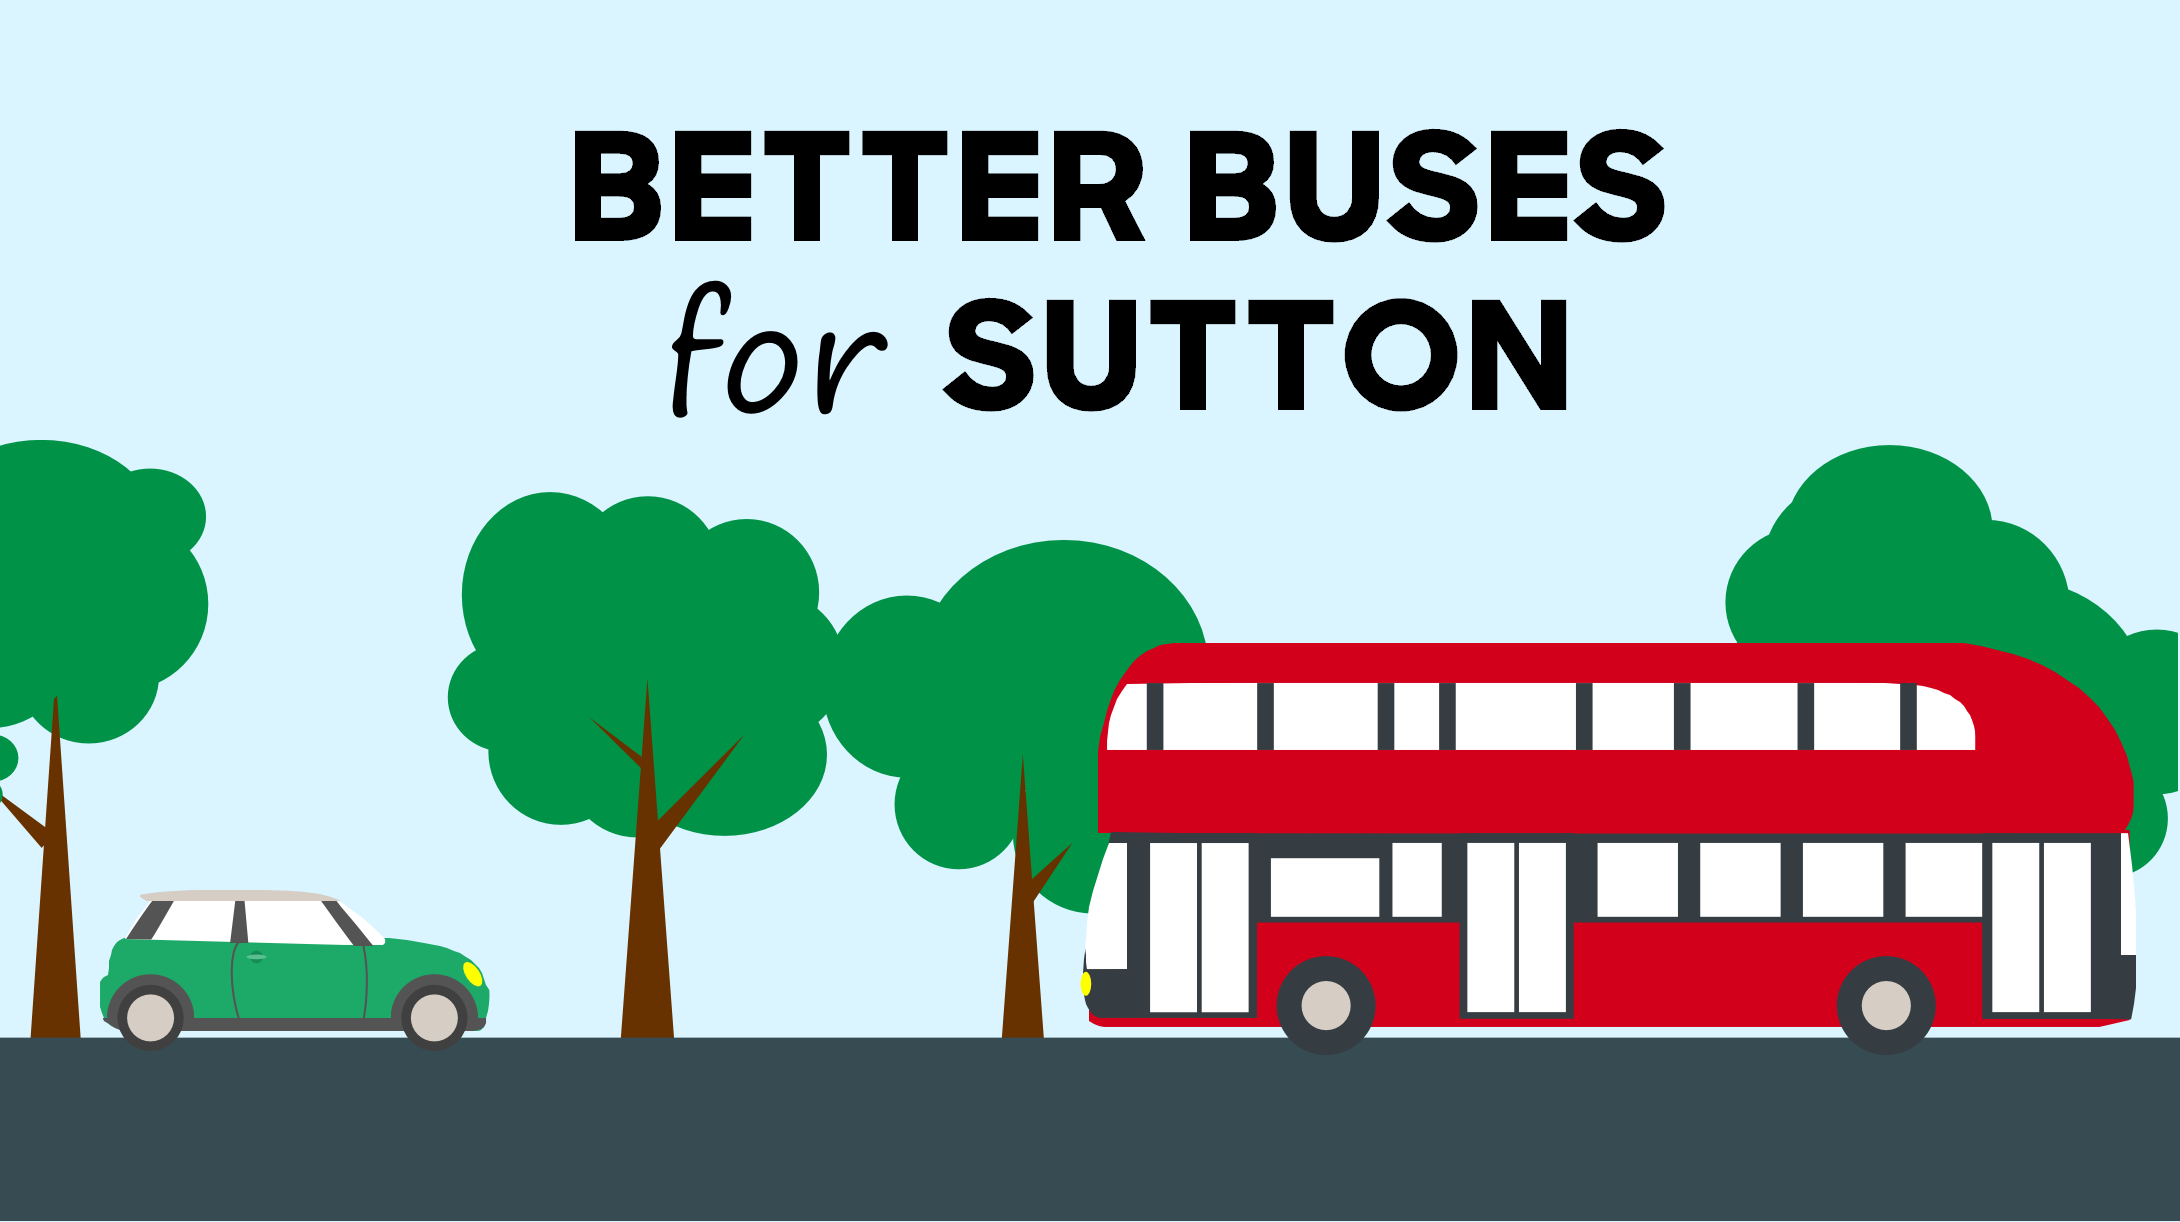 Better Buses for Sutton